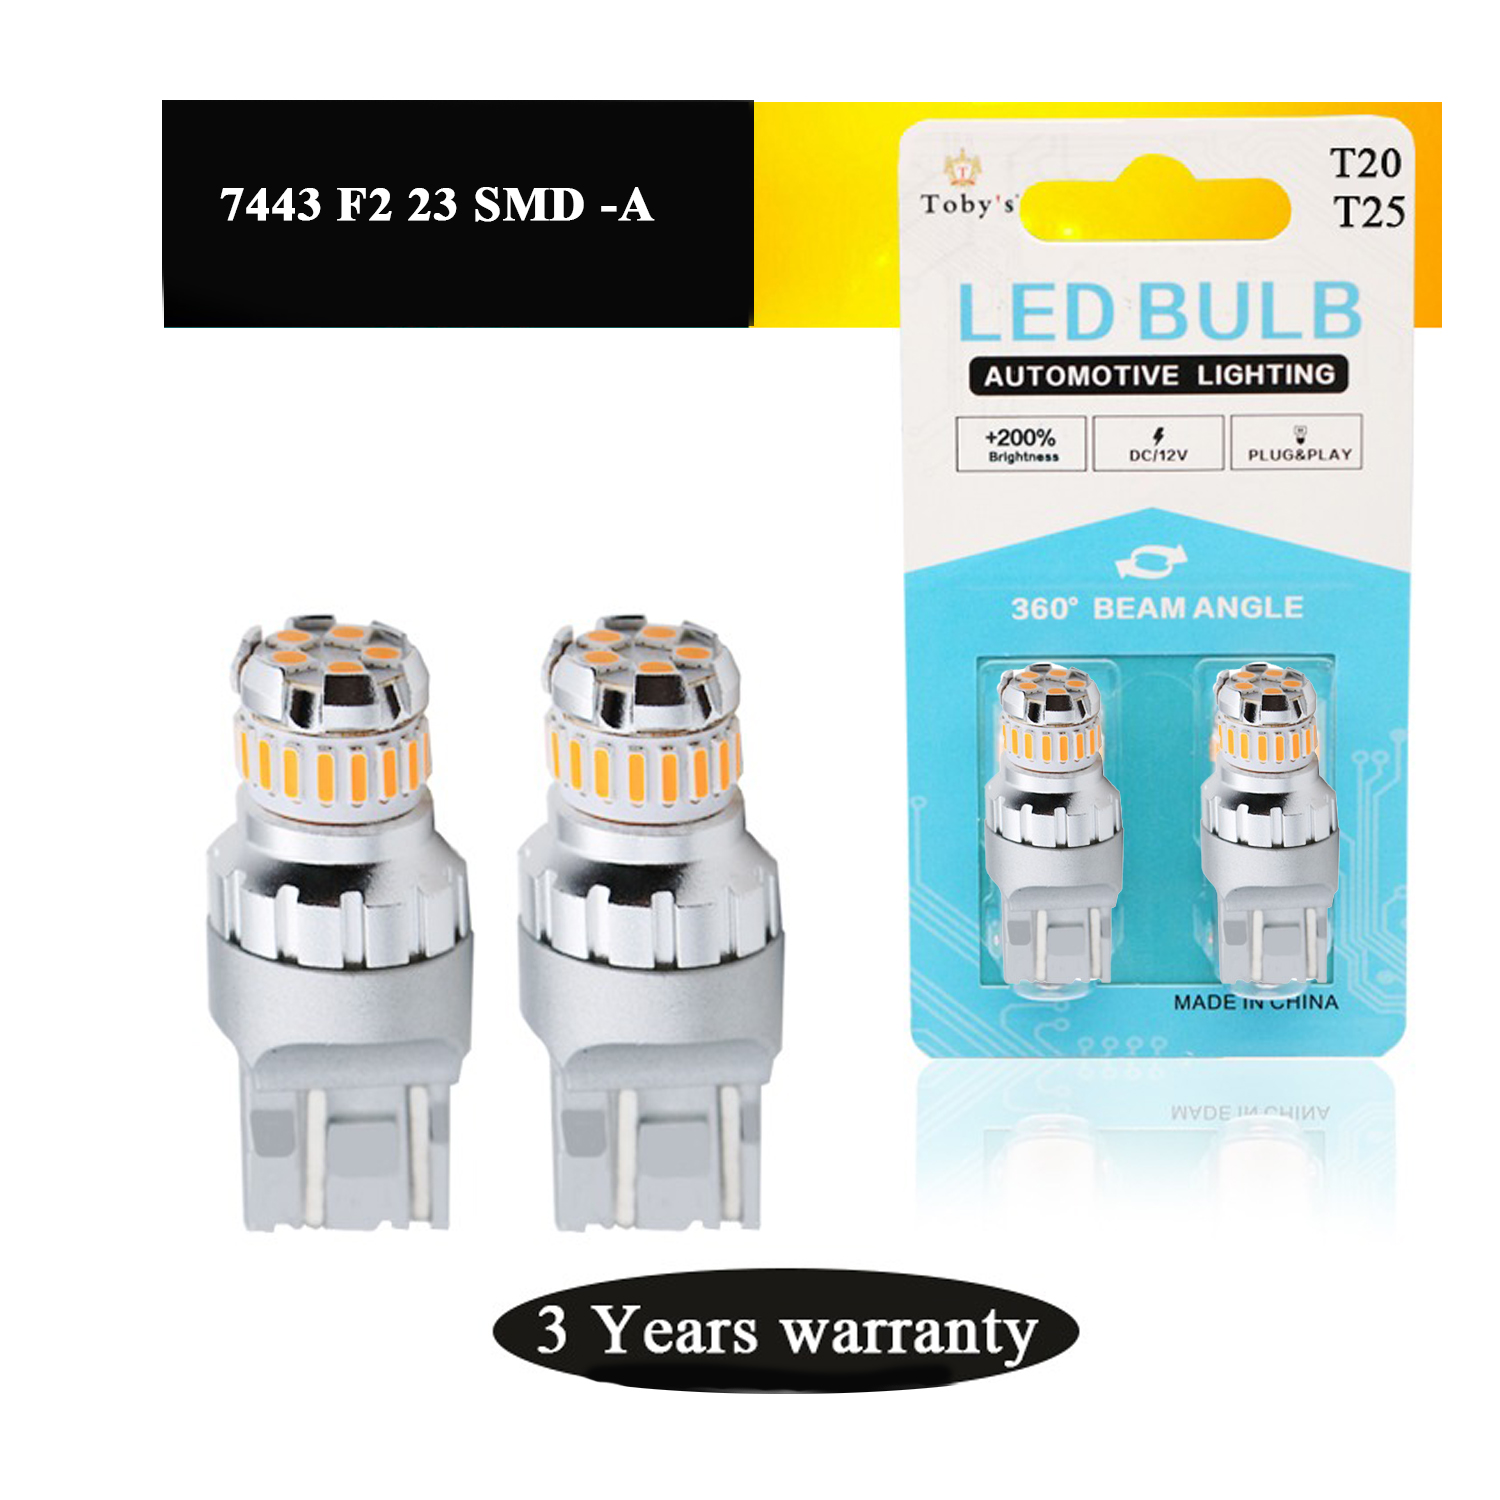 7443 F2 23 SMD -A LED replacement bulbs are engineered for superior performance